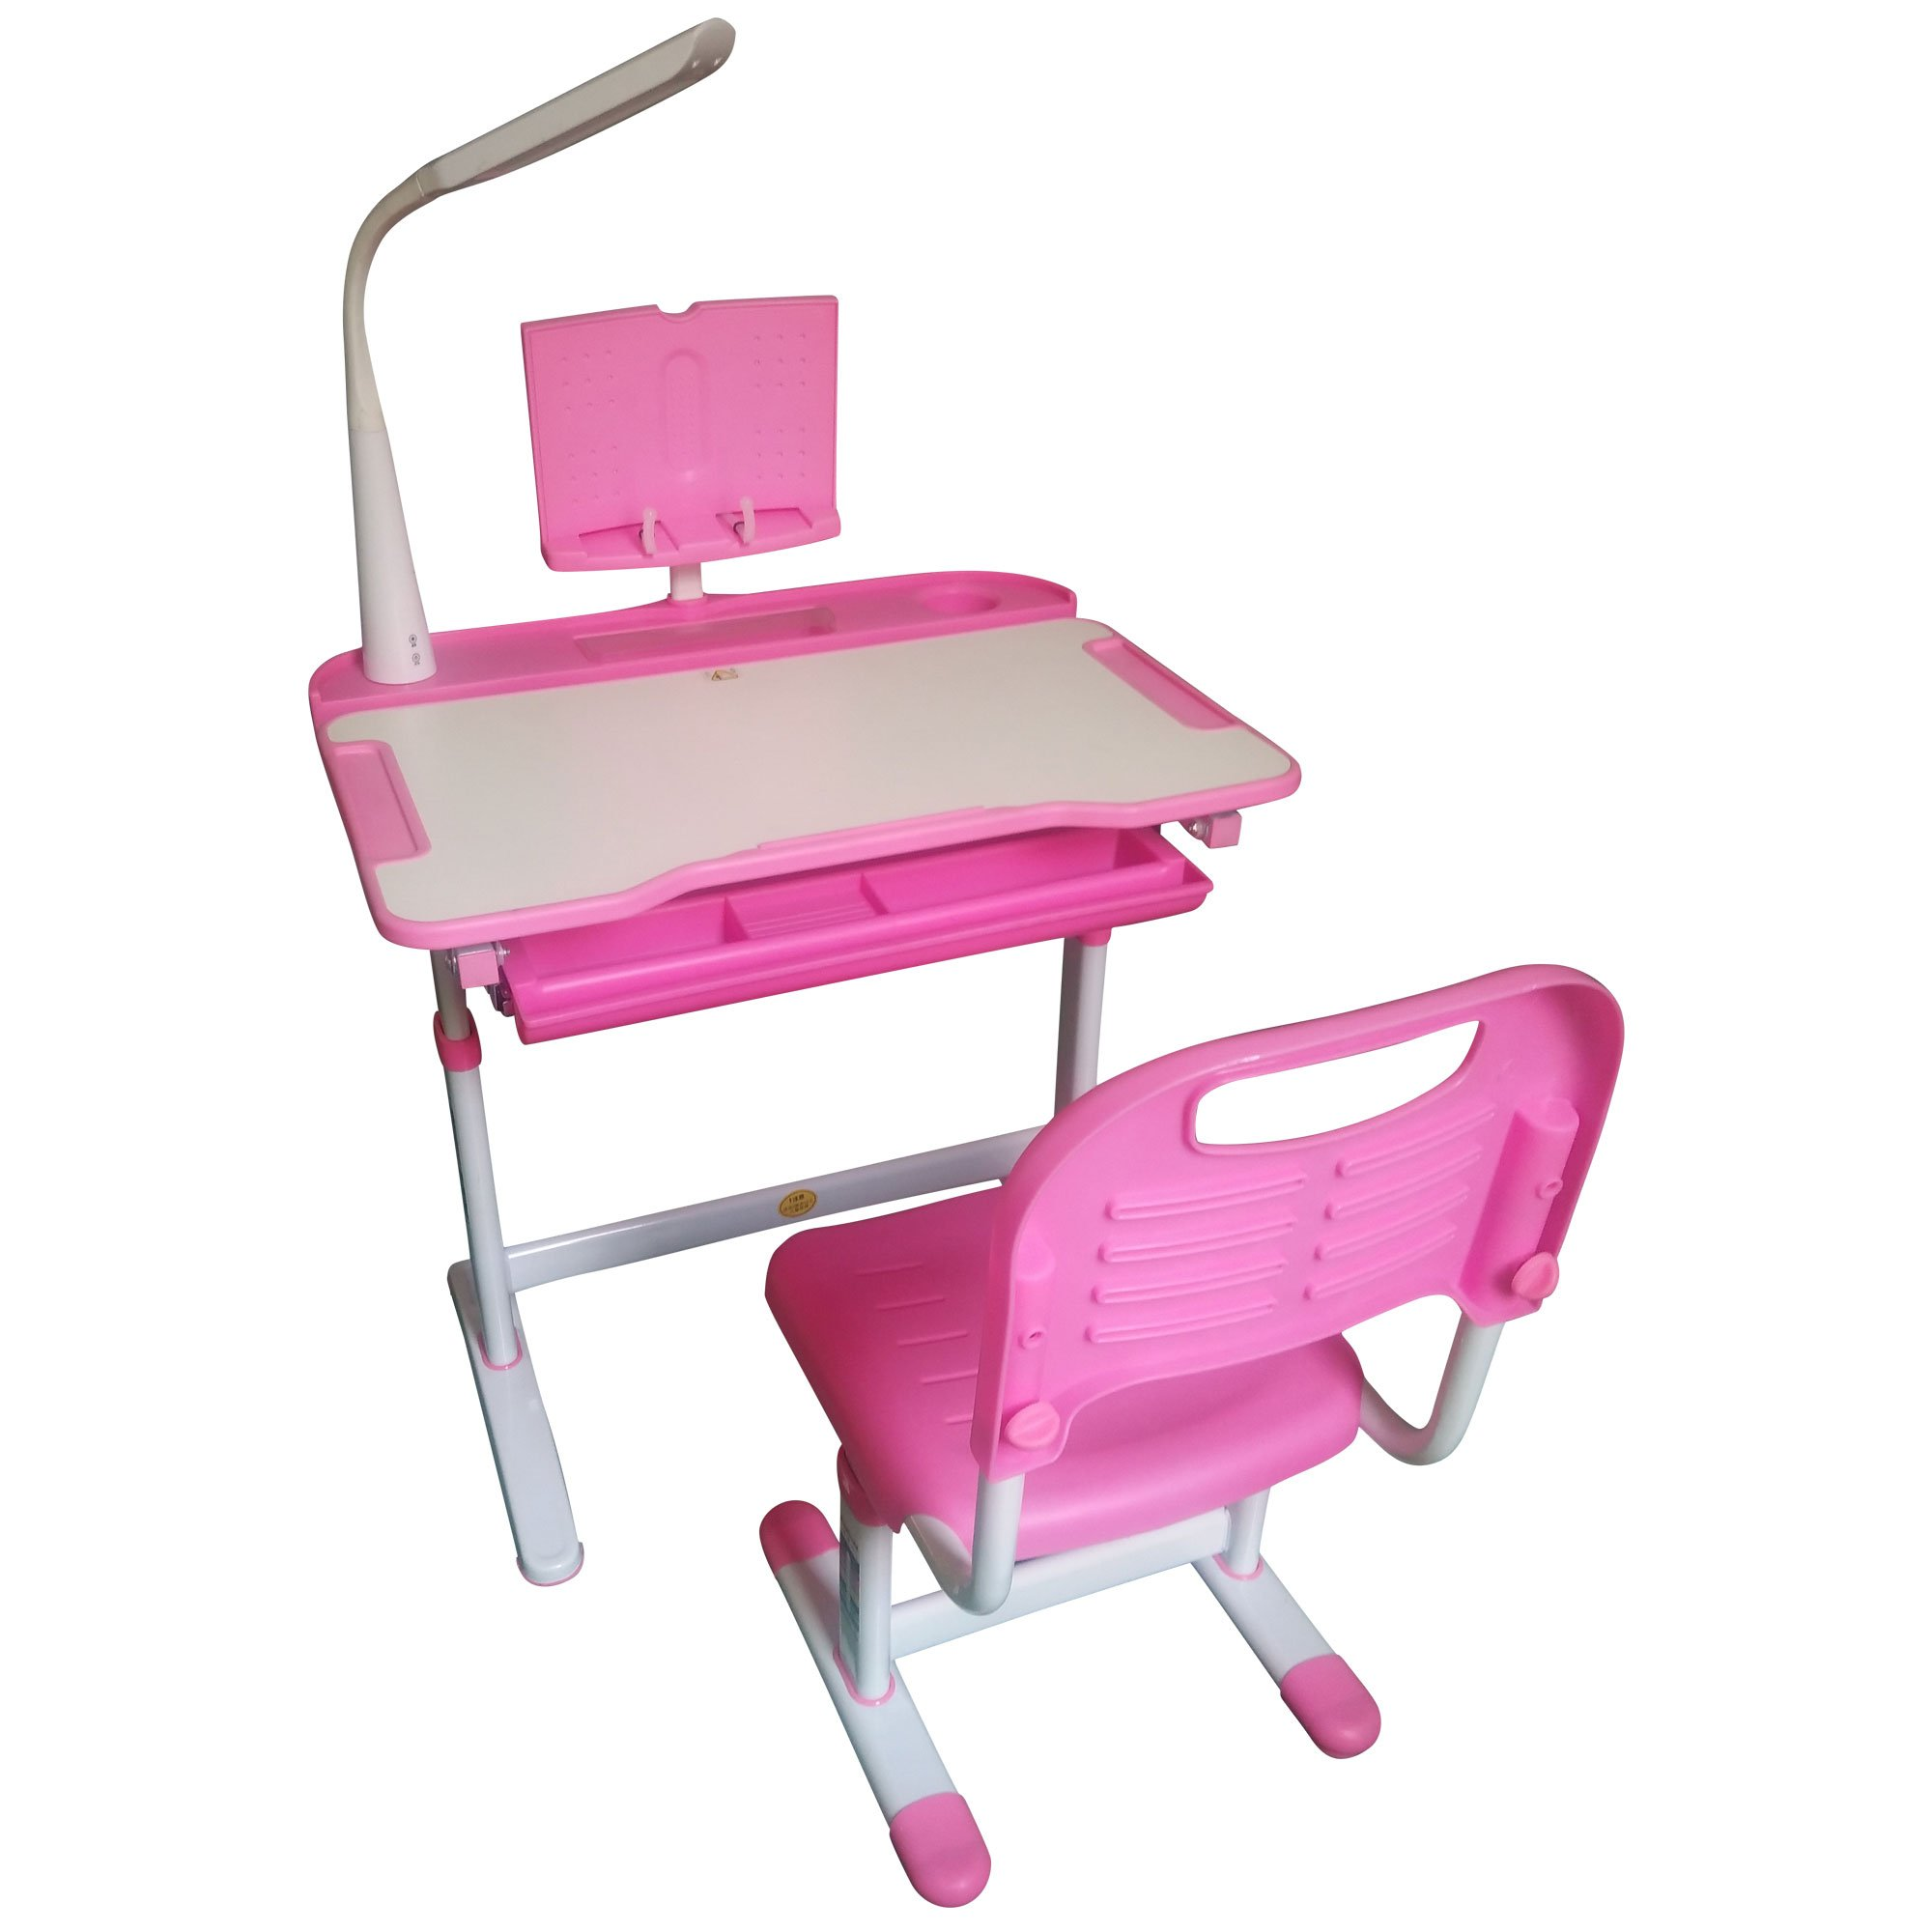 kids-study-table-chair-school-desk-height-adjustable-Midi-Pink-desk-01